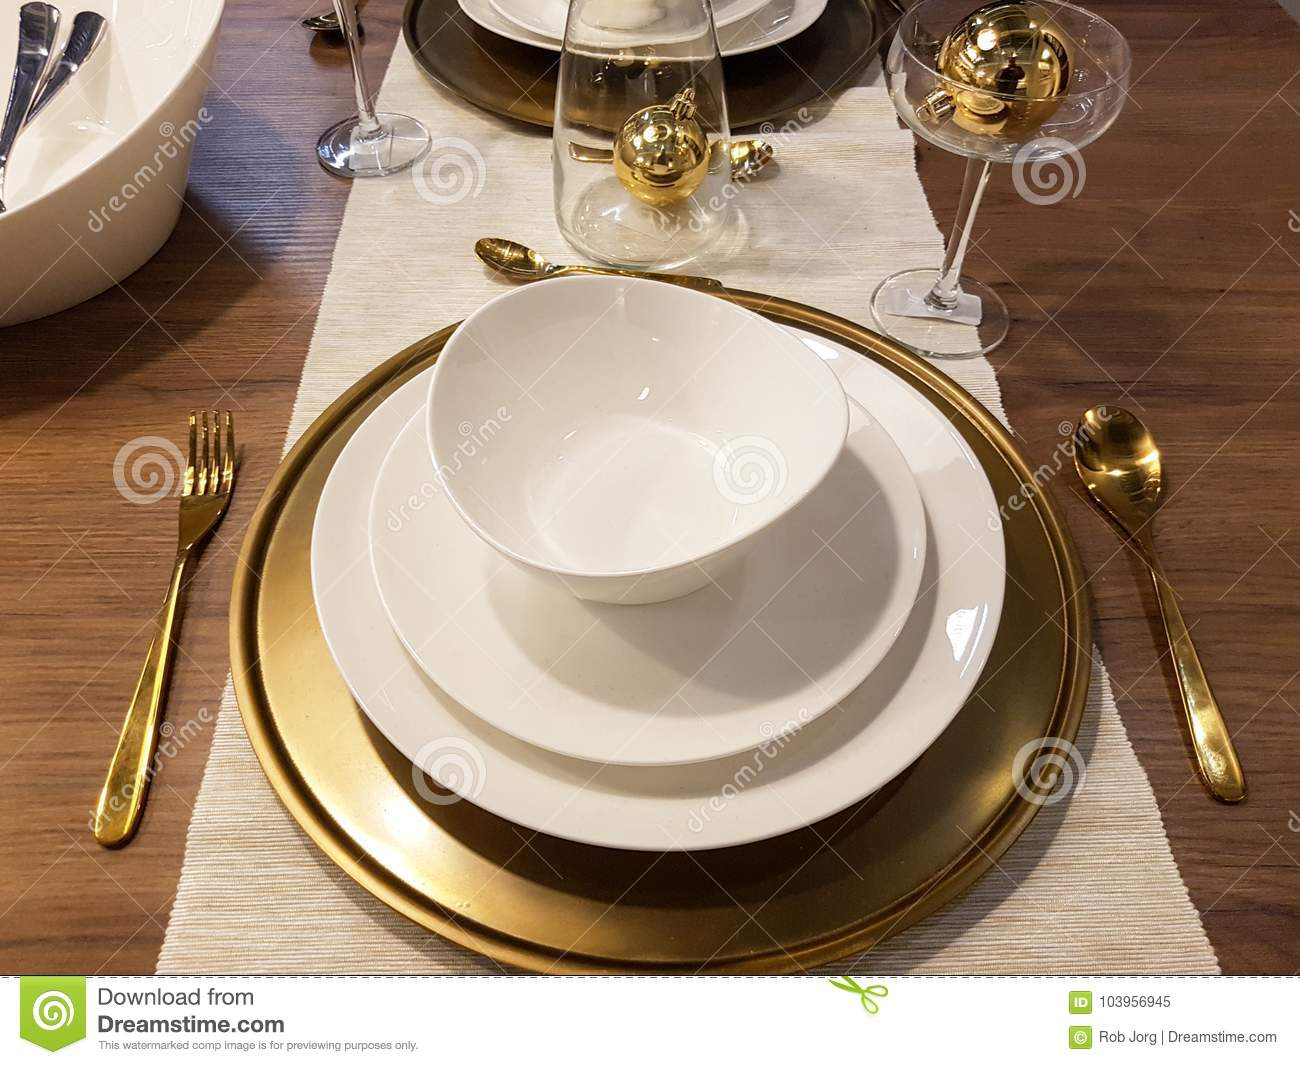 Festive season table settings